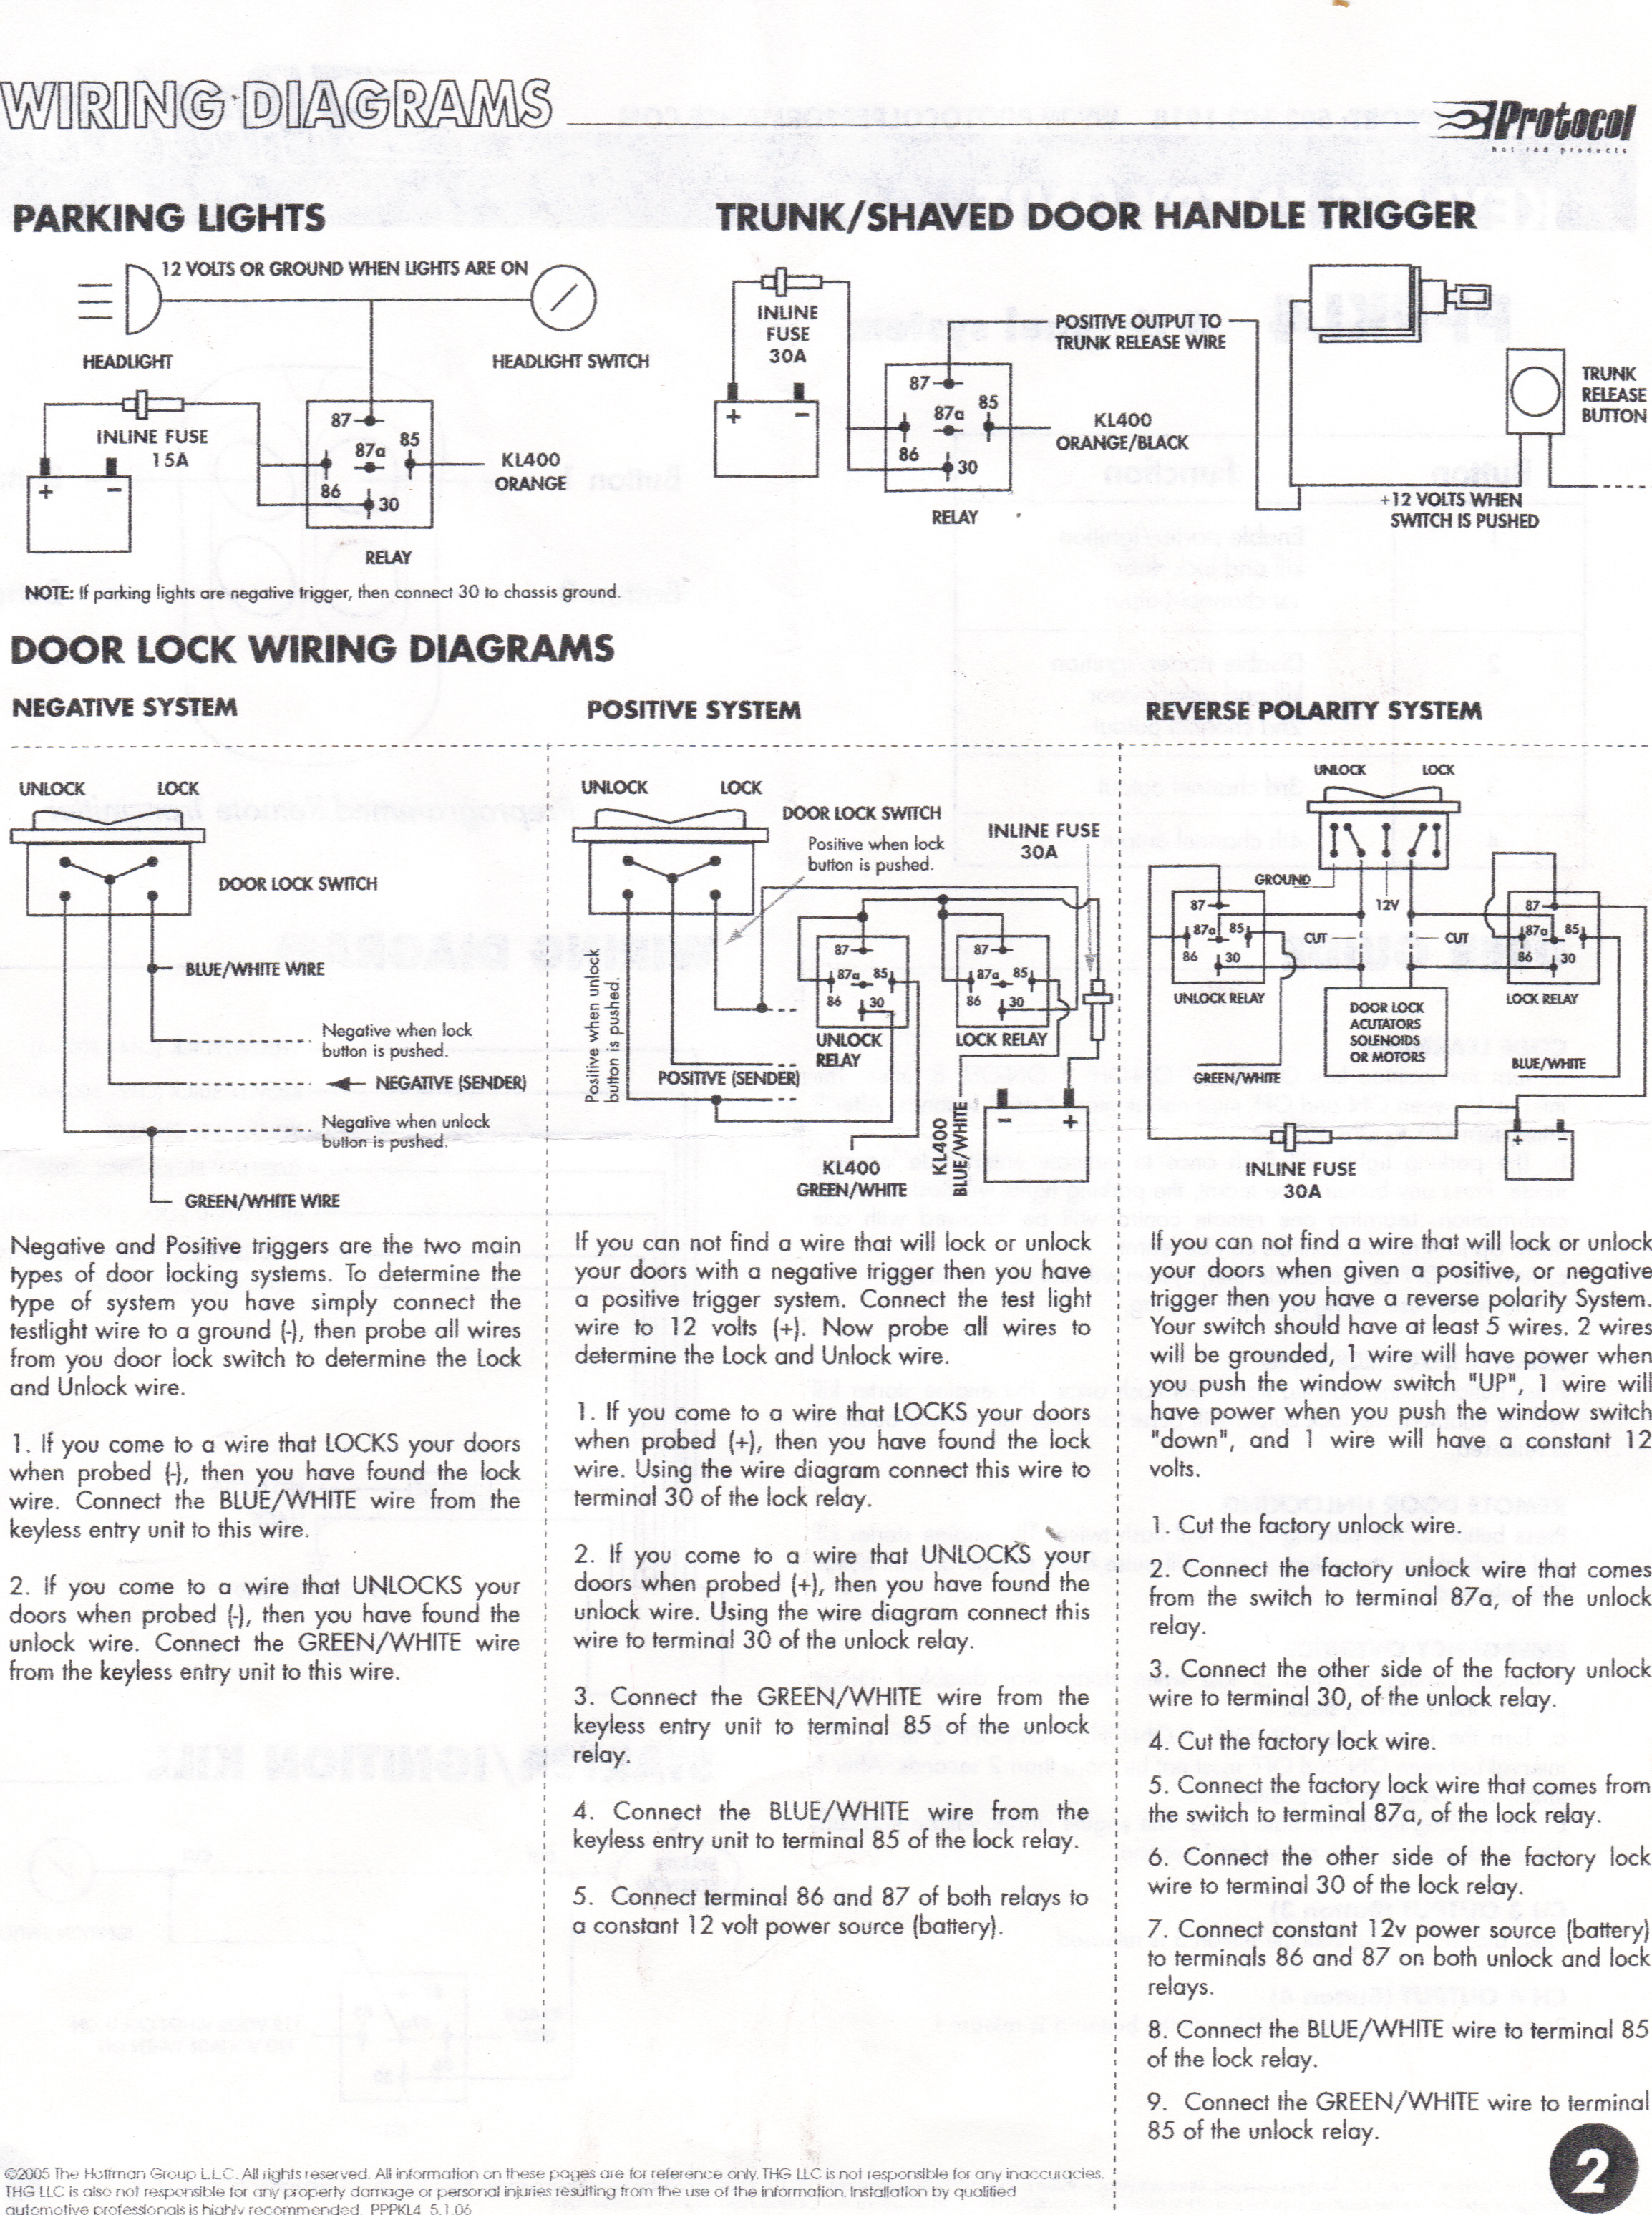 1970 Vw Karmann Ghia Wiring Diagram Other Diagrams Protocol Keyless Entry Mdl Pppkl4